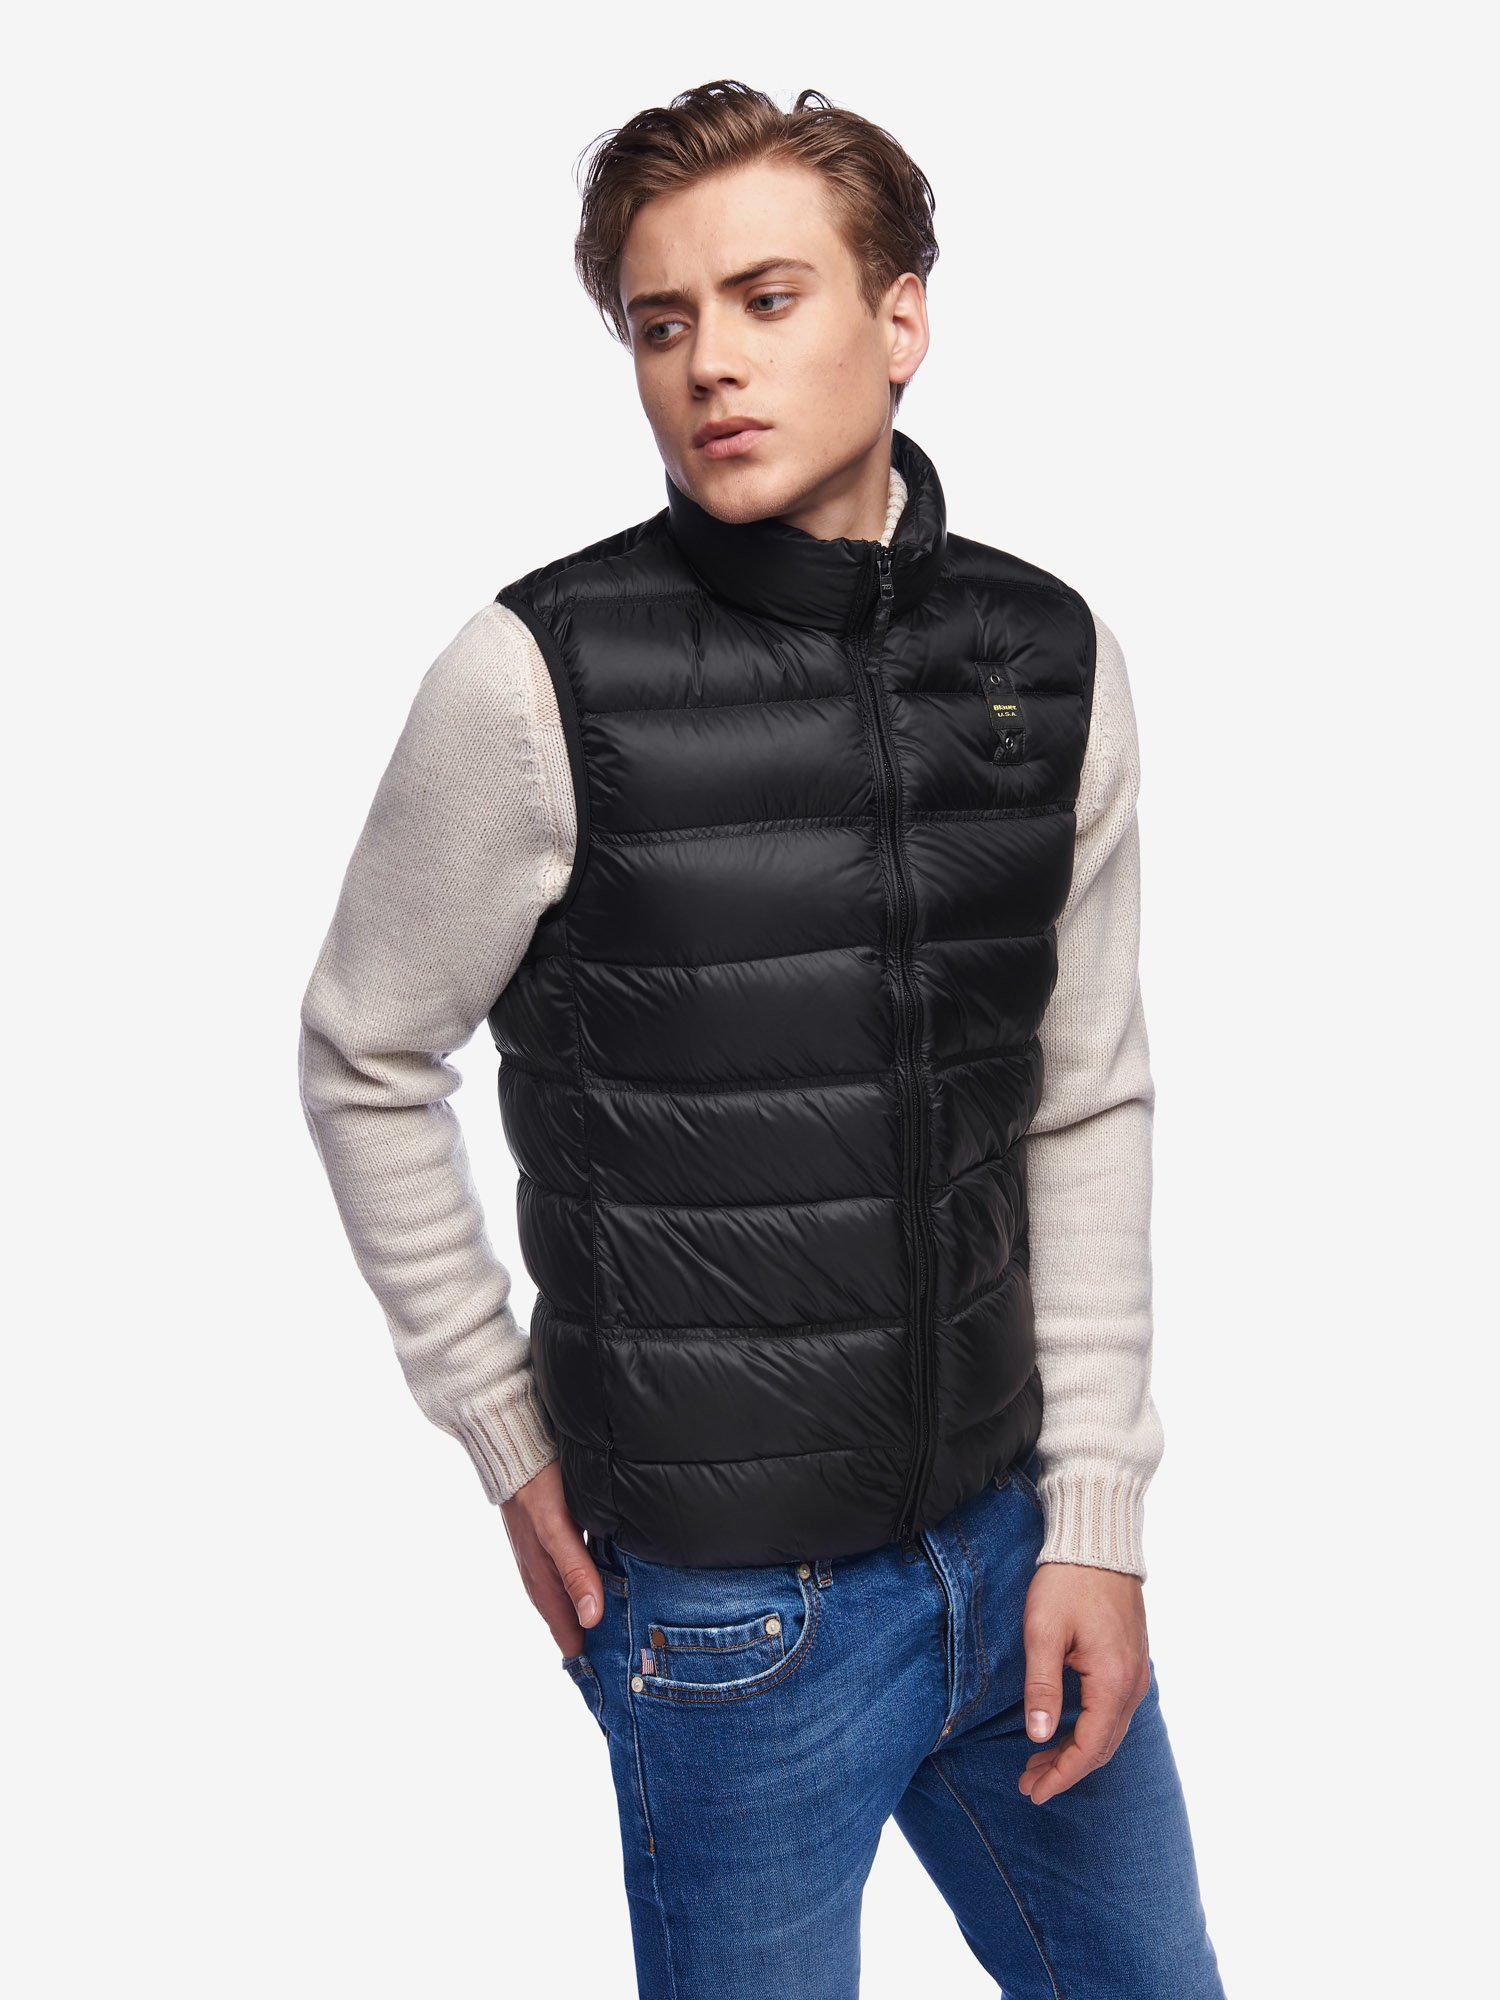 Blauer - BURNS DOWN VEST - Black - Blauer